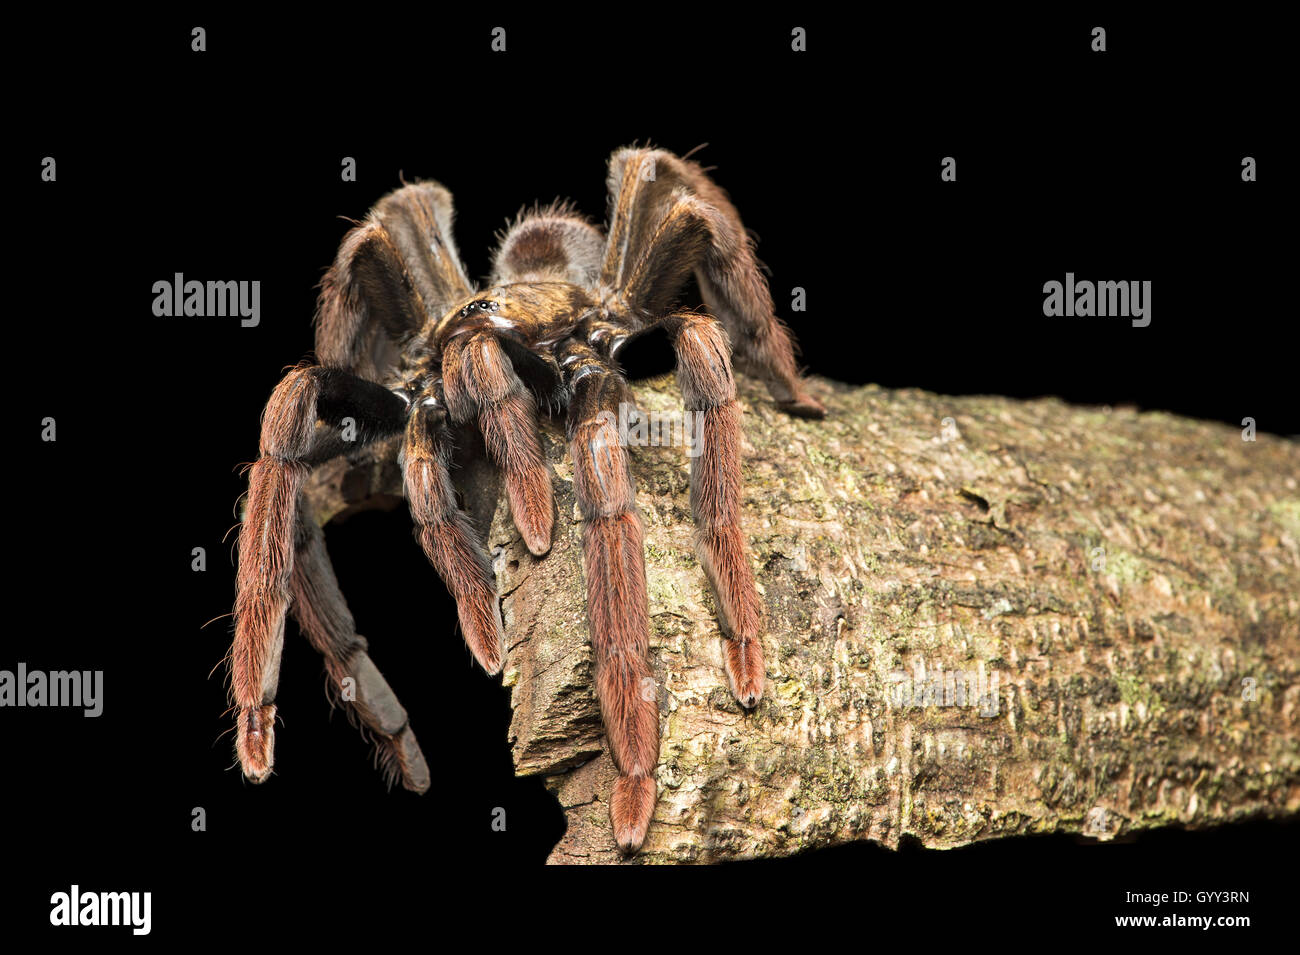 Juvenile Tarantula, (Theraphosidae family), Amazon rainforest, Canande River Reserve, Choco forest, Ecuador - Stock Image